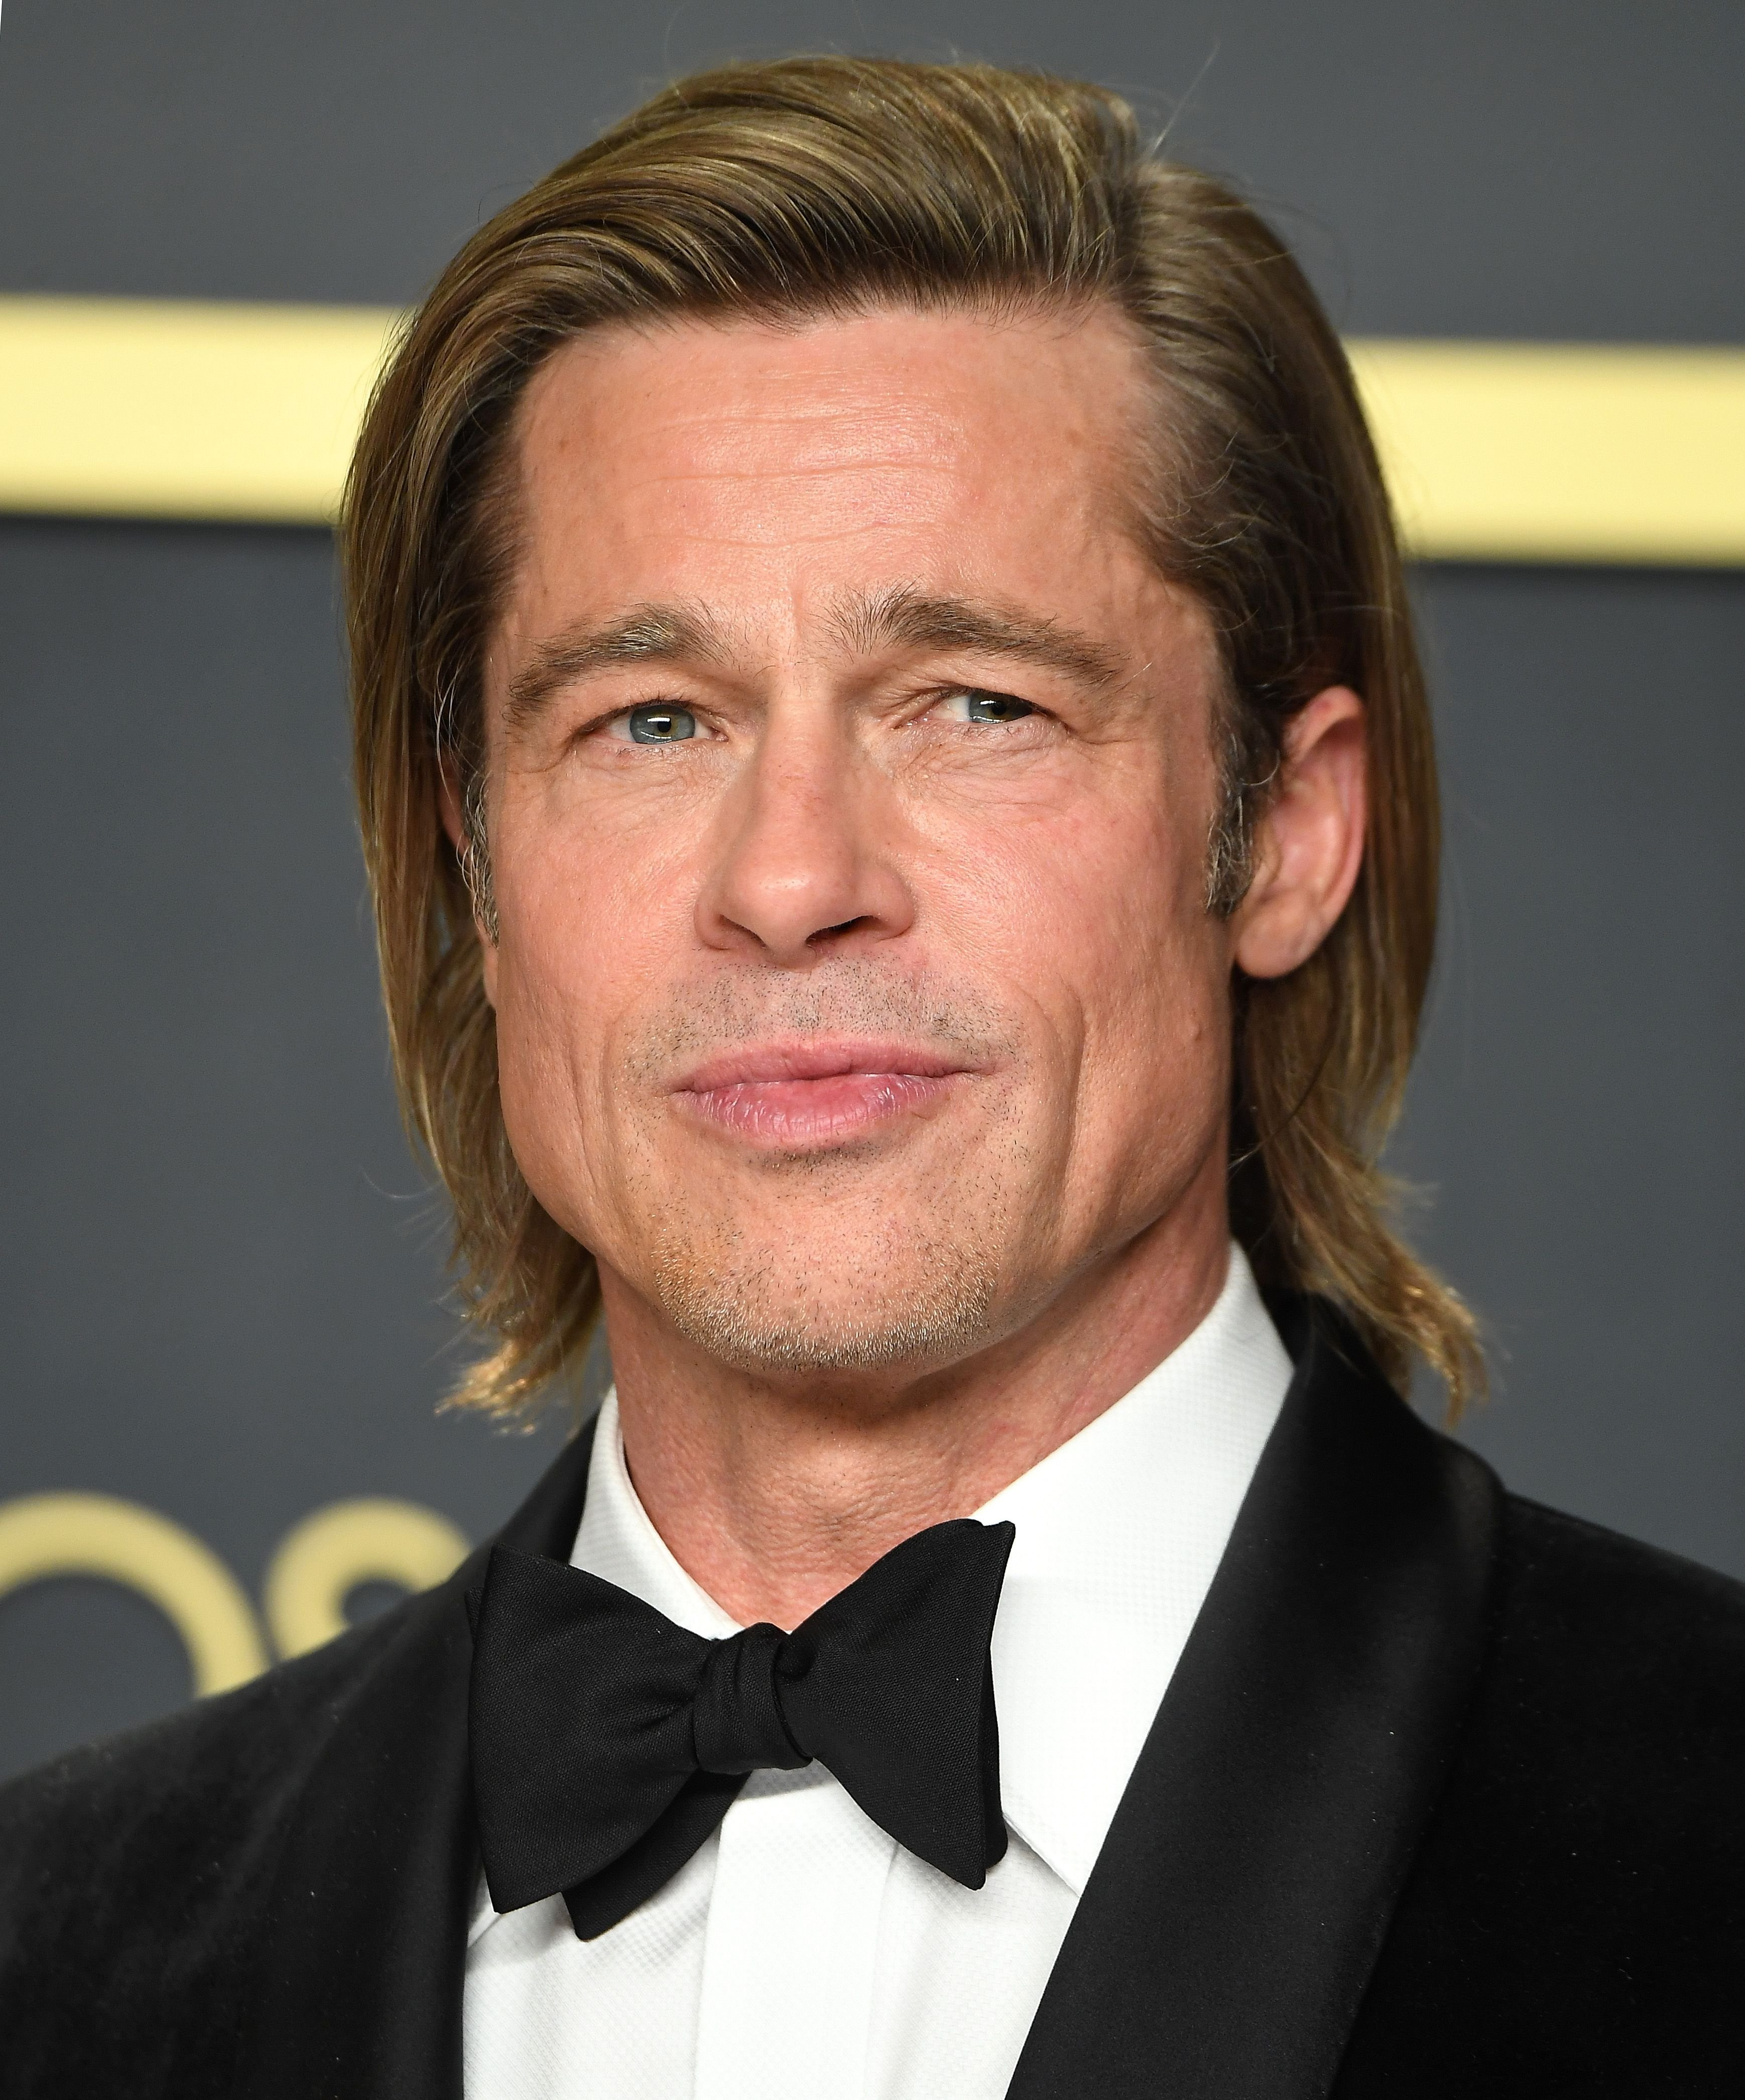 Brad Pitt at the 92nd Annual Academy Awards at Hollywood and Highland in Hollywood, California   Photo: Steve Granitz/WireImage via Getty Images